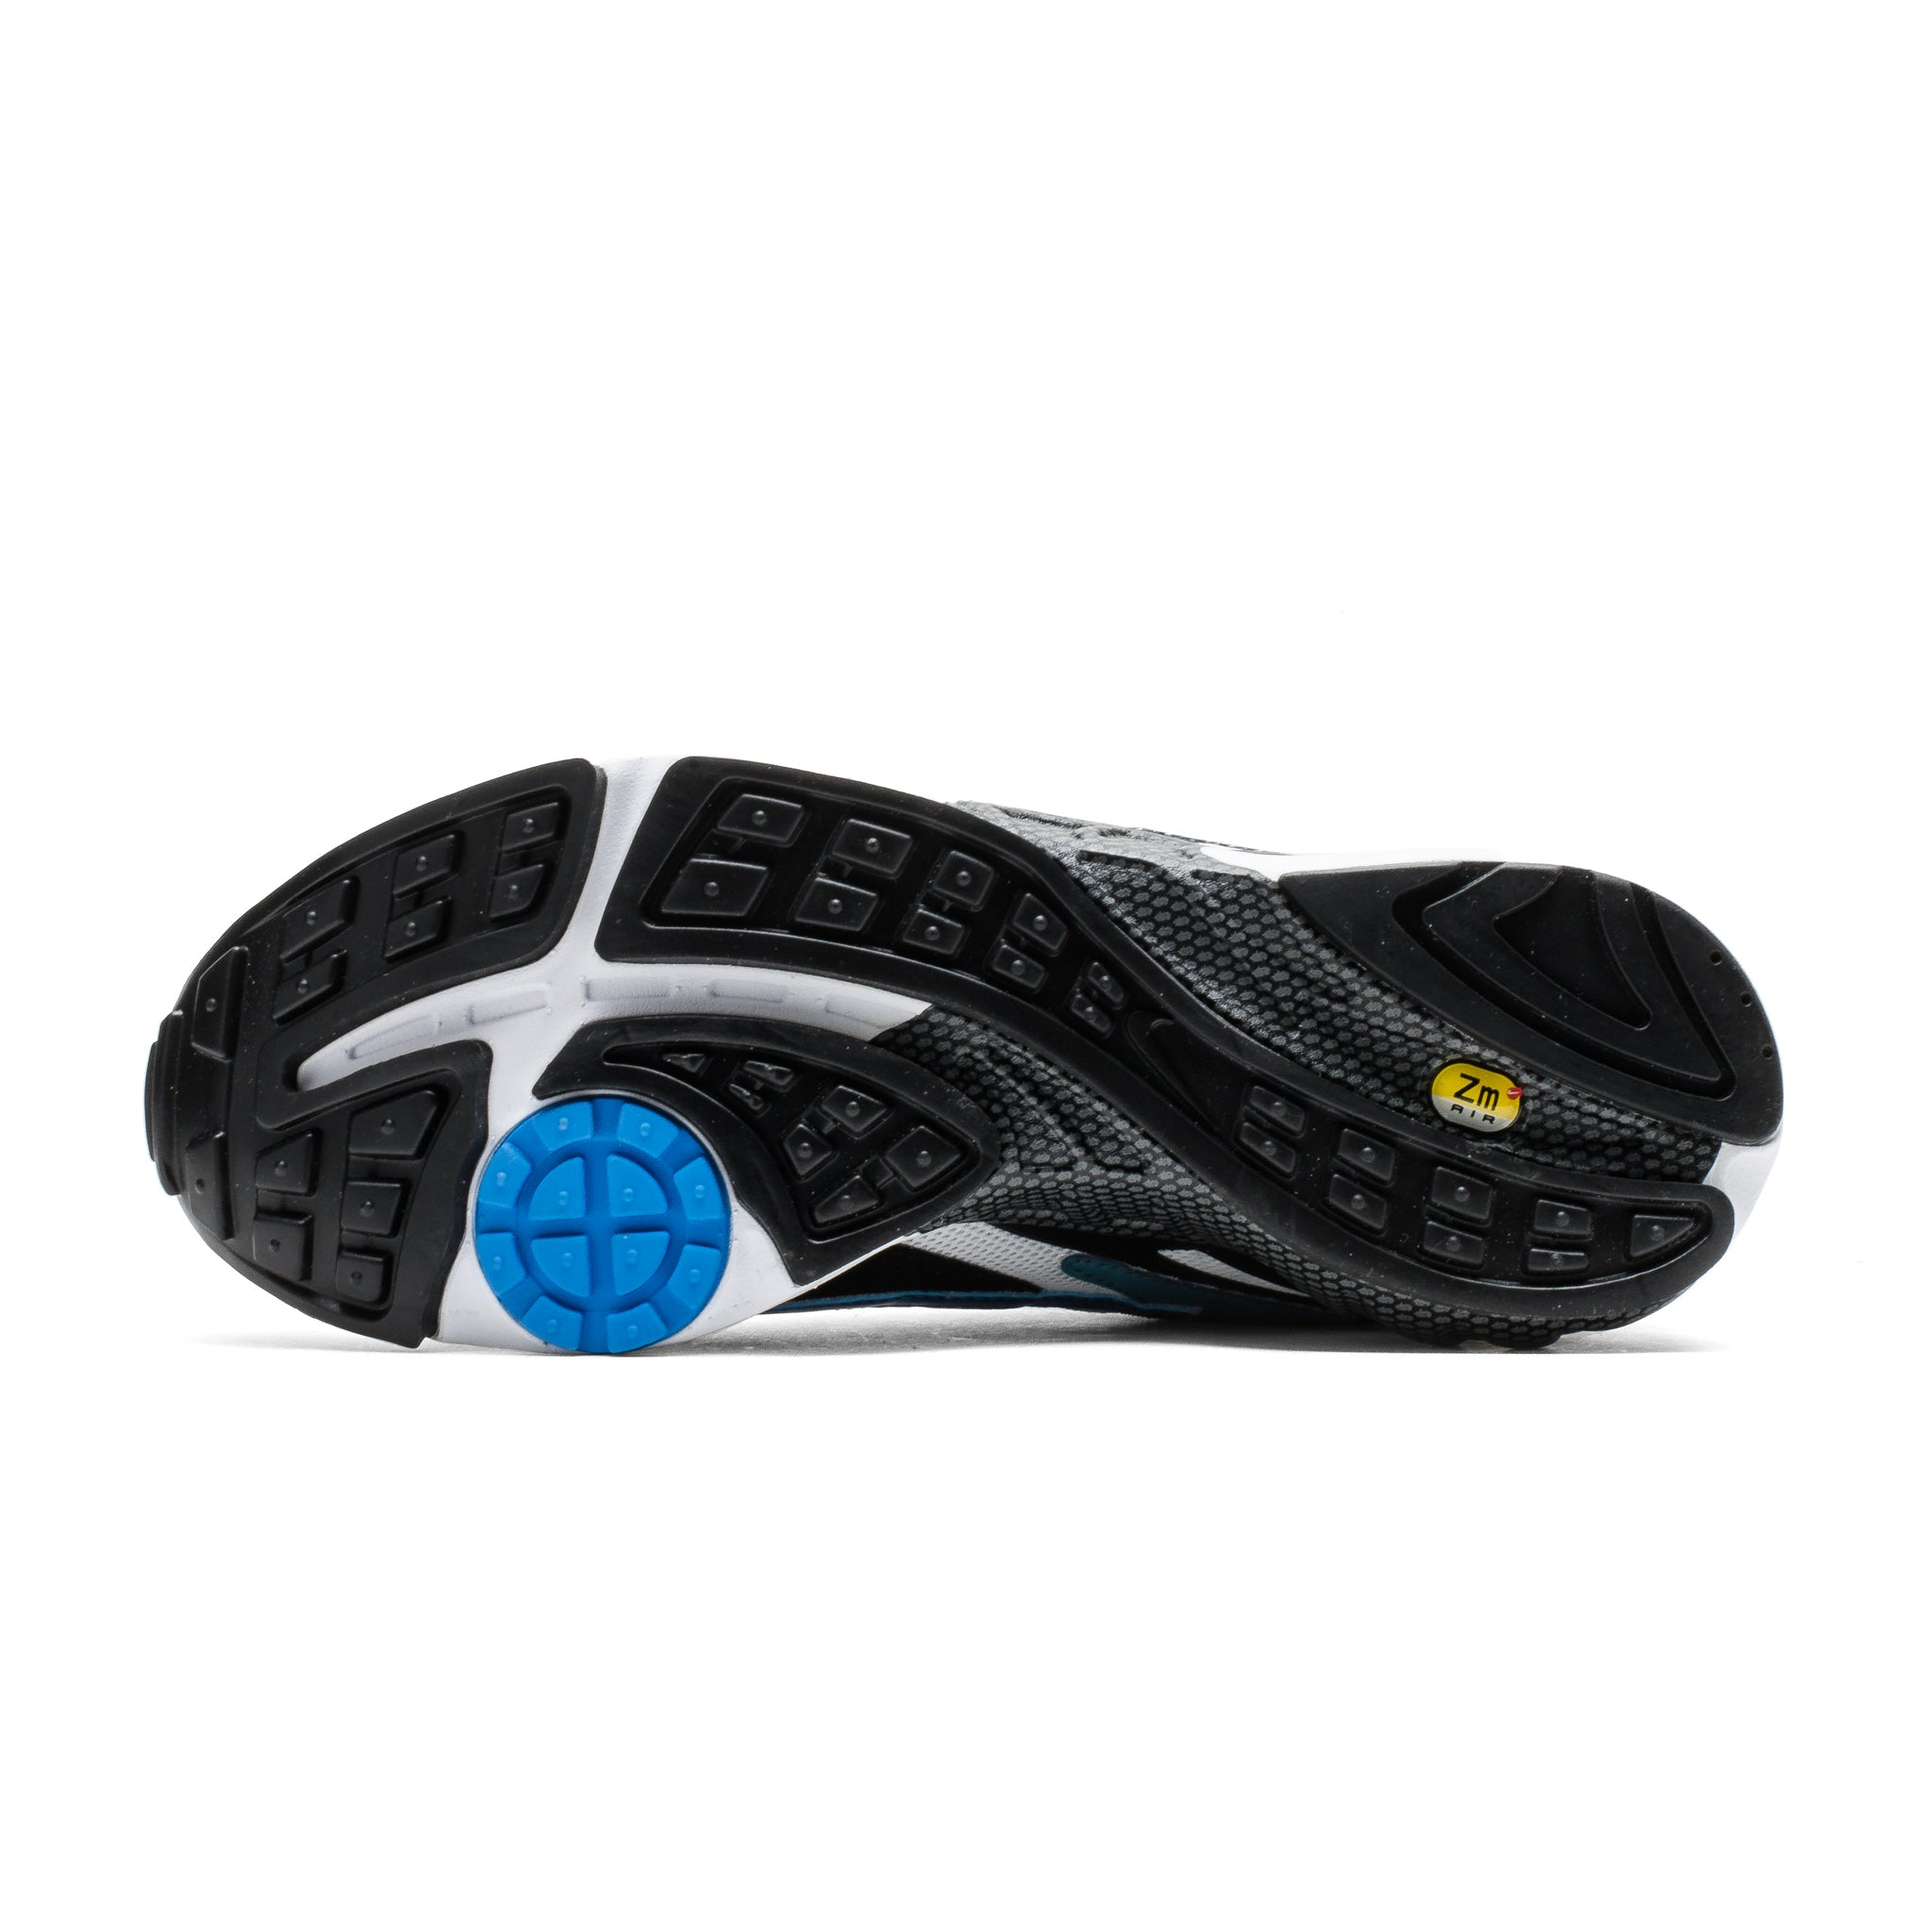 Air Ghost Racer AT5410-004 Black